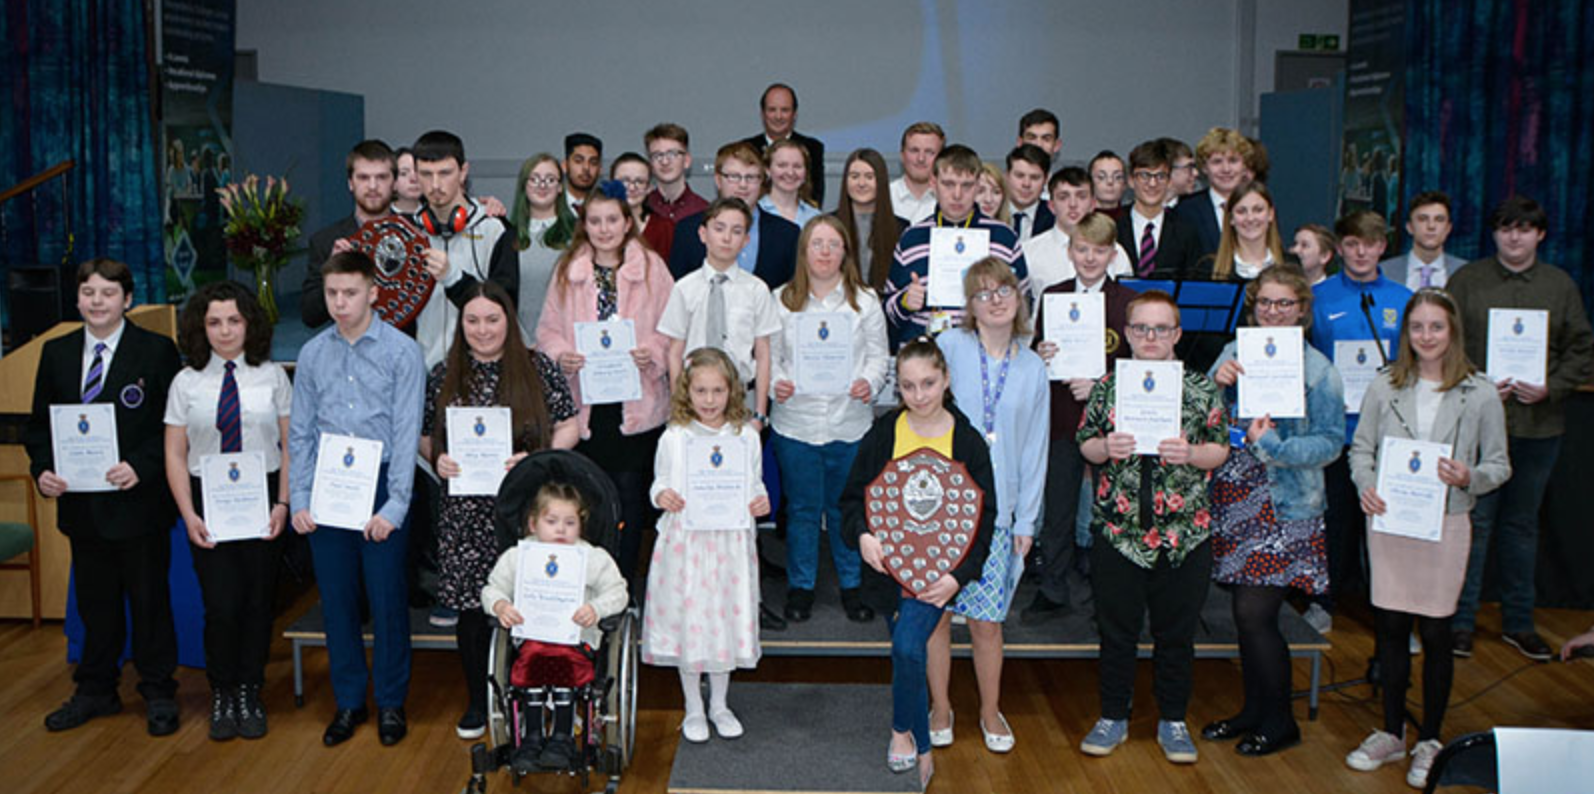 Group of young people at an awards event holding certificates